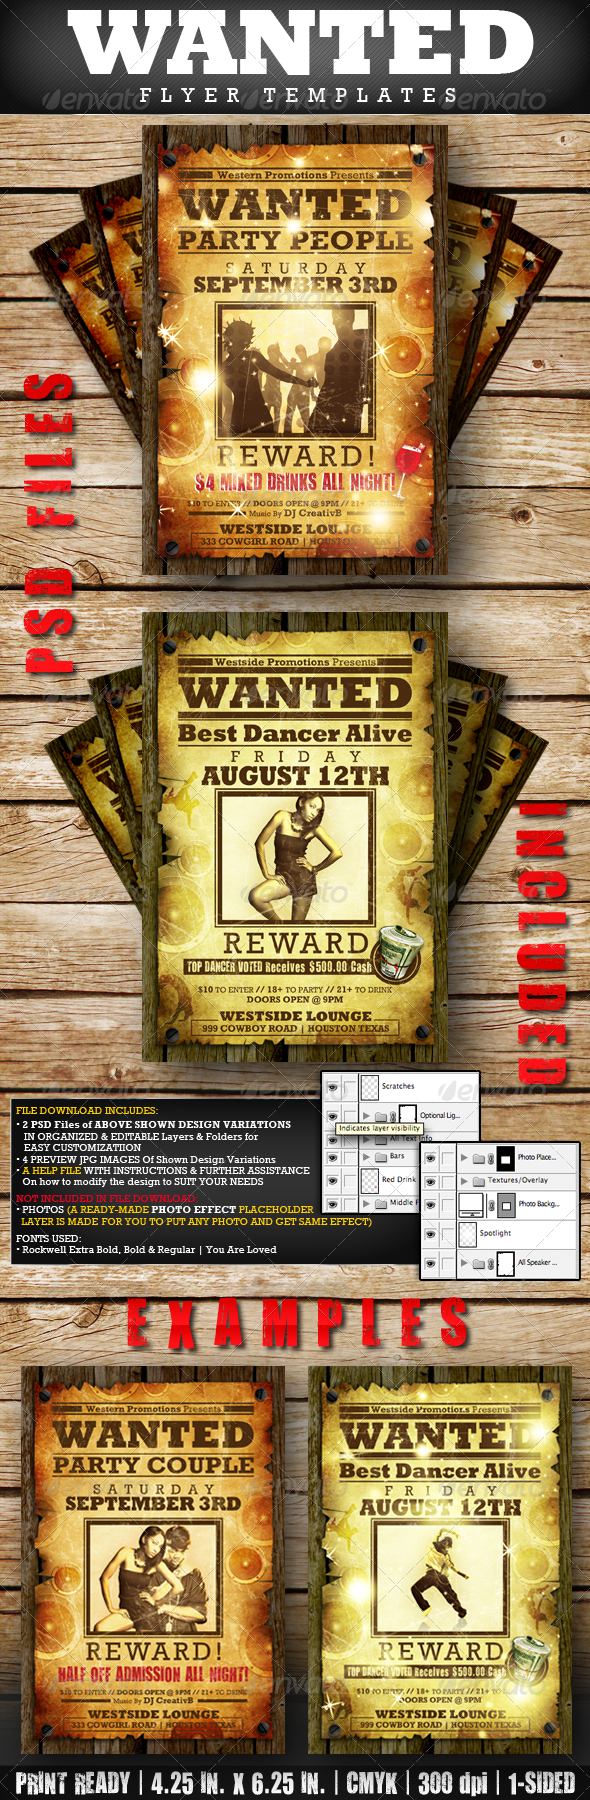 WANTED Flyer Templates